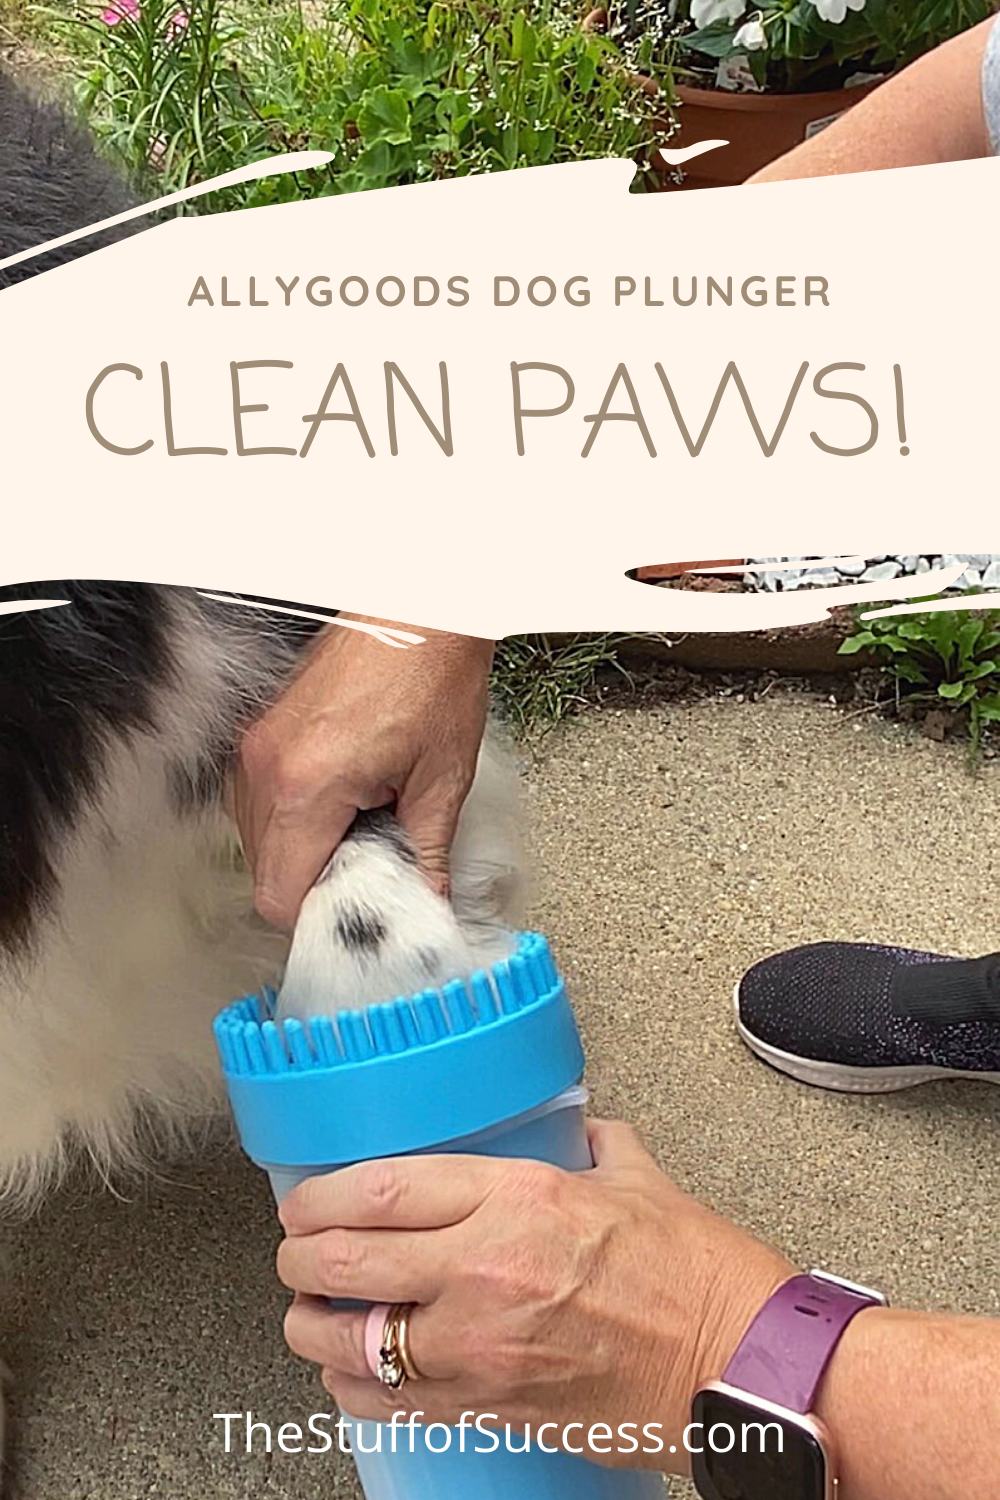 Allygoods Dog Plunger - Clean Paws!